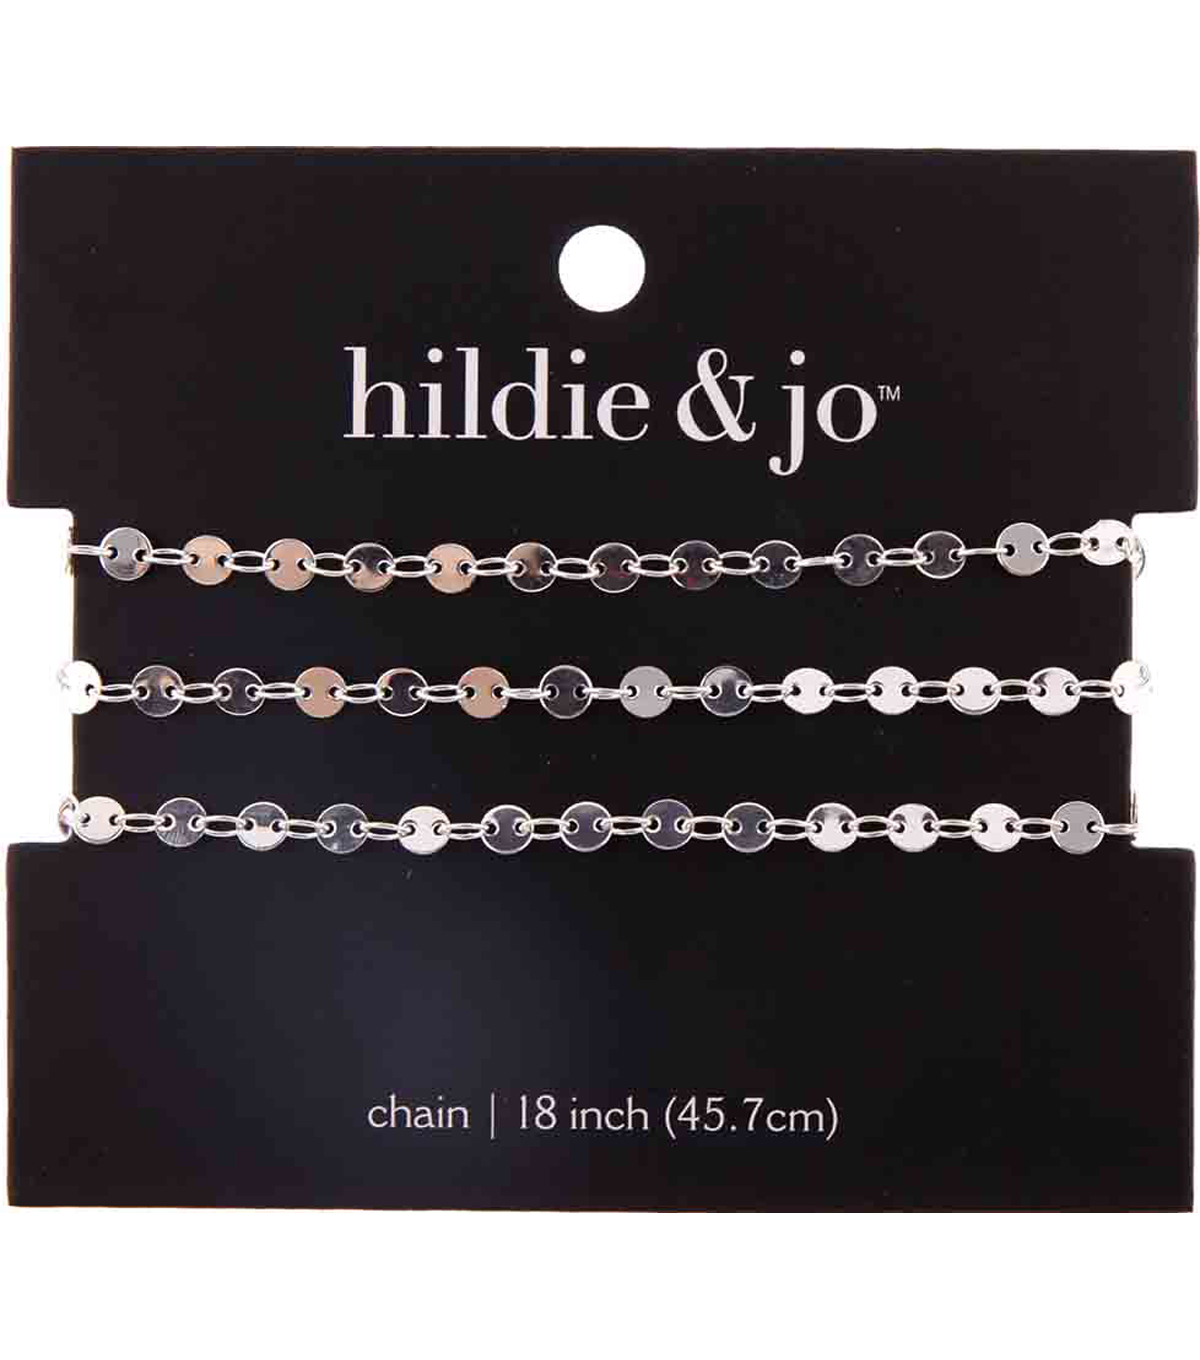 hildie & jo 18\u0022 Copper & Iron Small Circles Chain-Silver